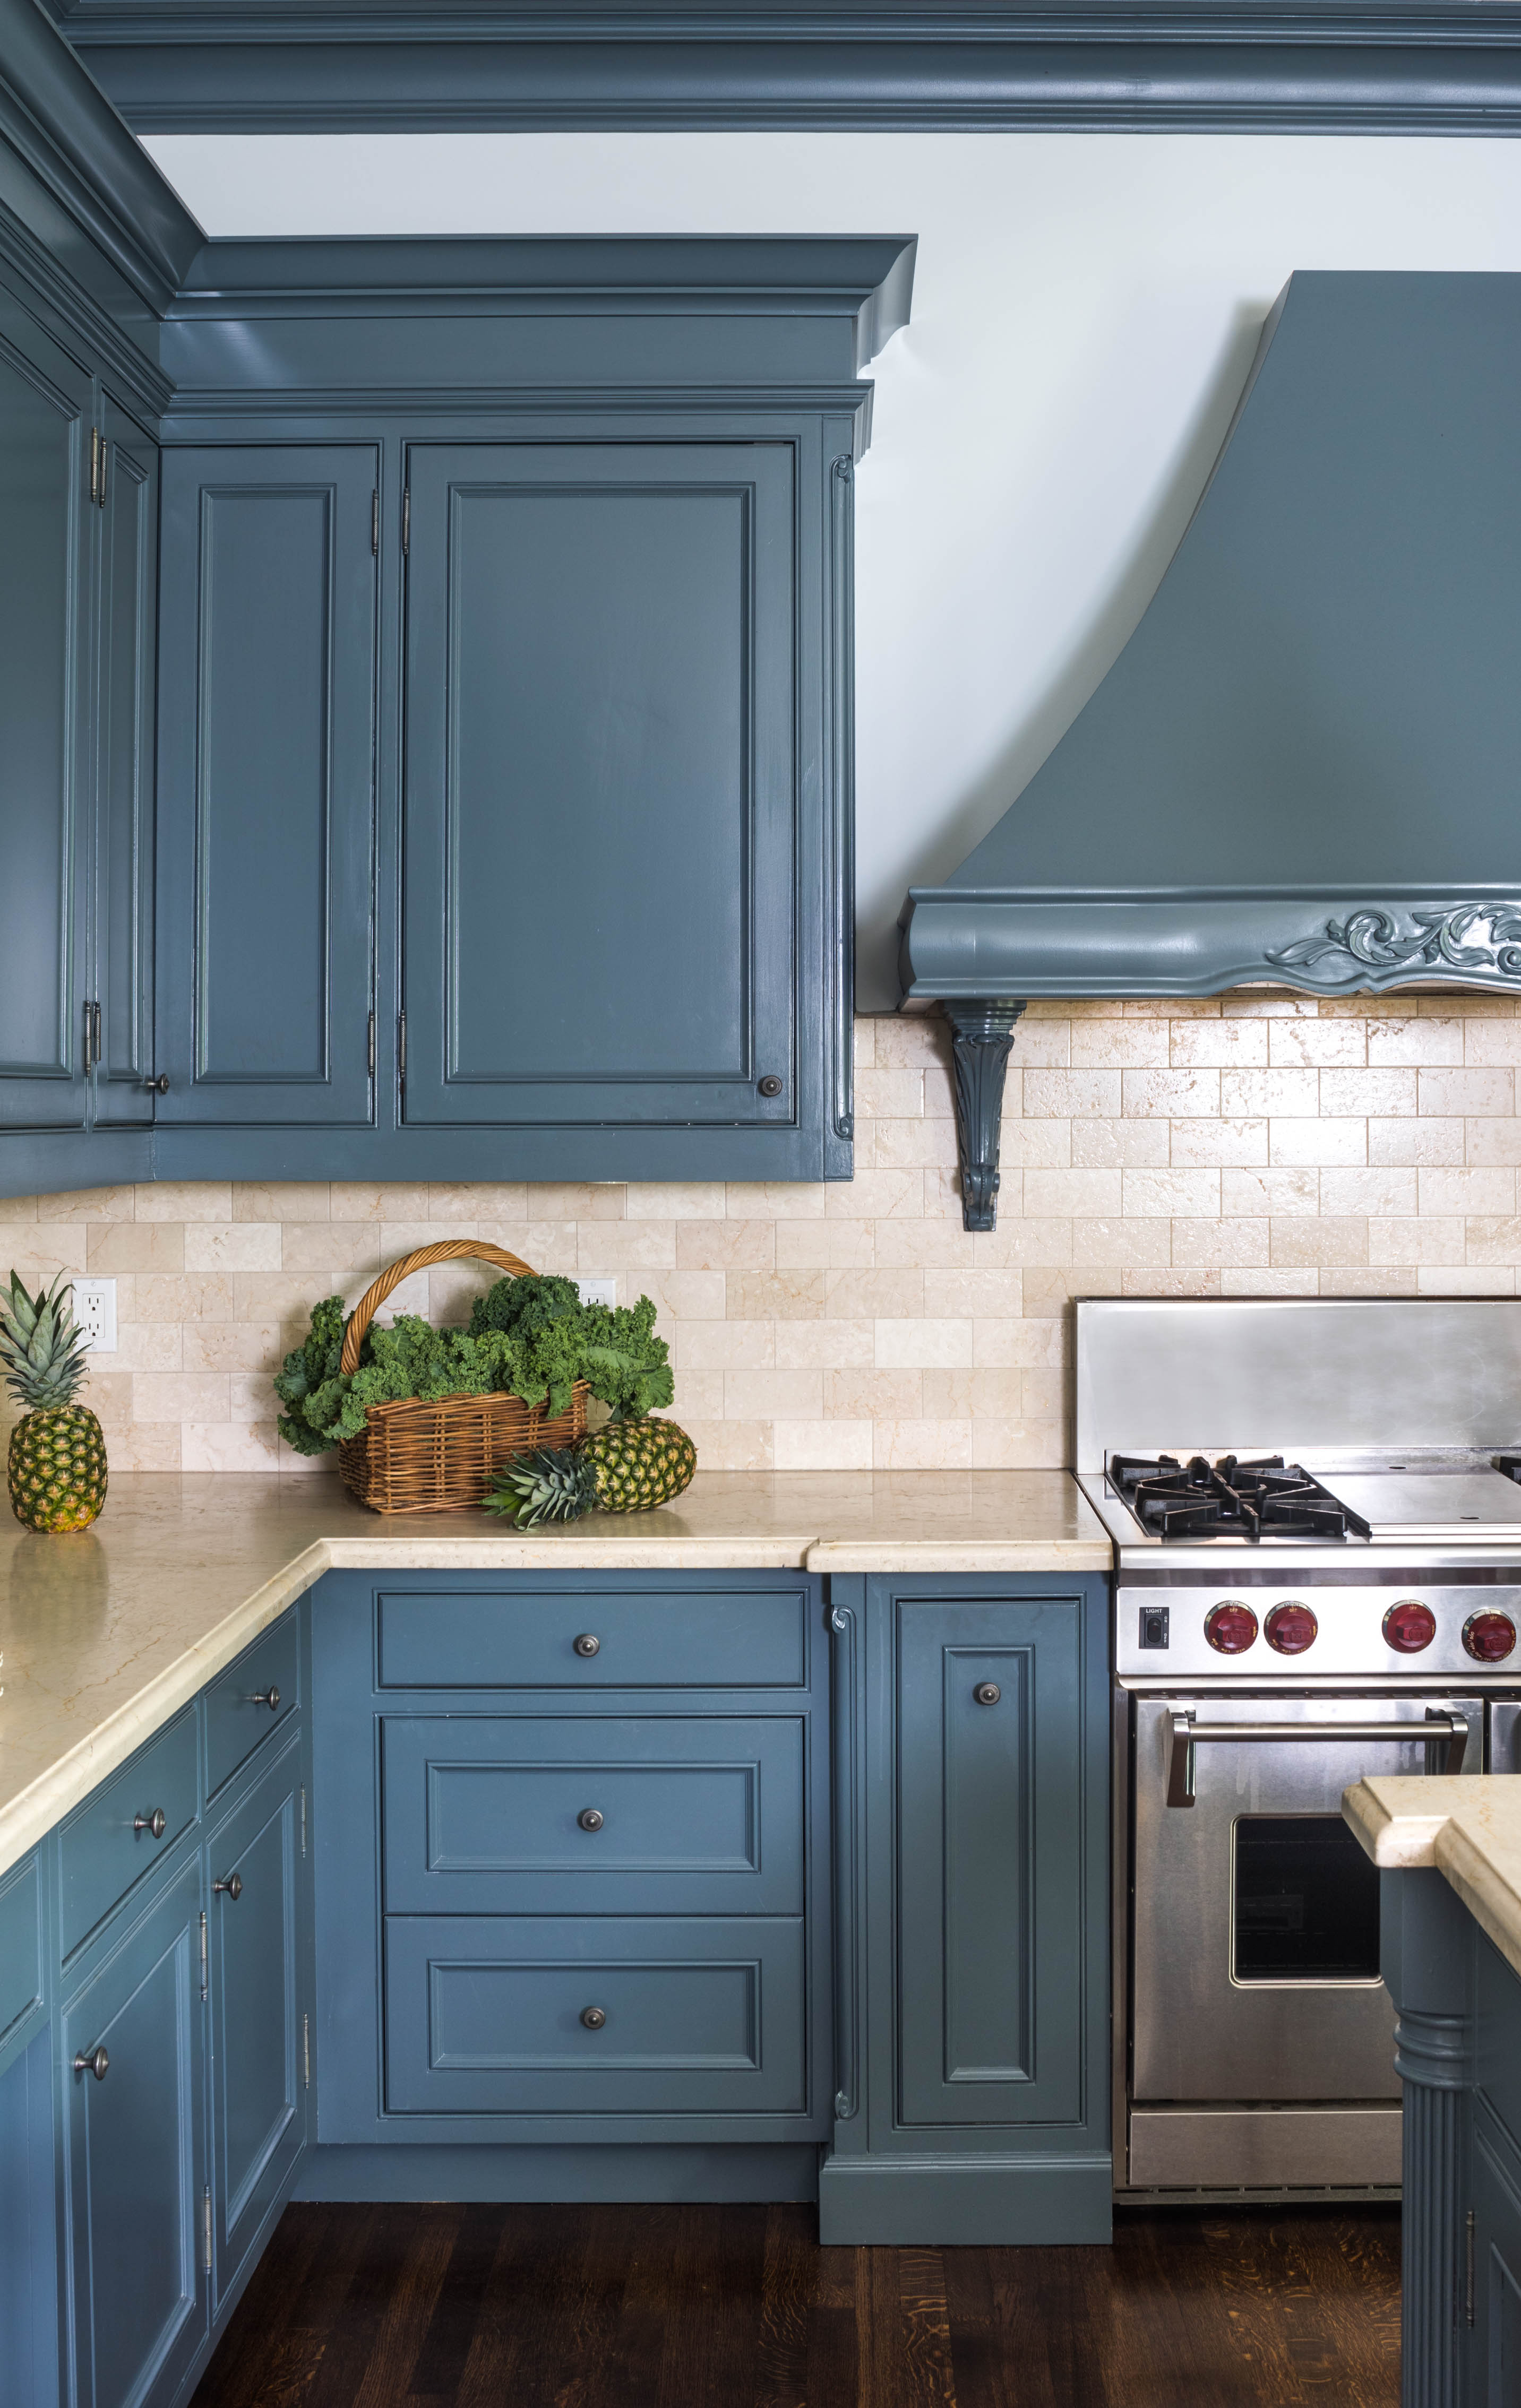 To paint or not to paint the kitchen cabinets | WillMac Design